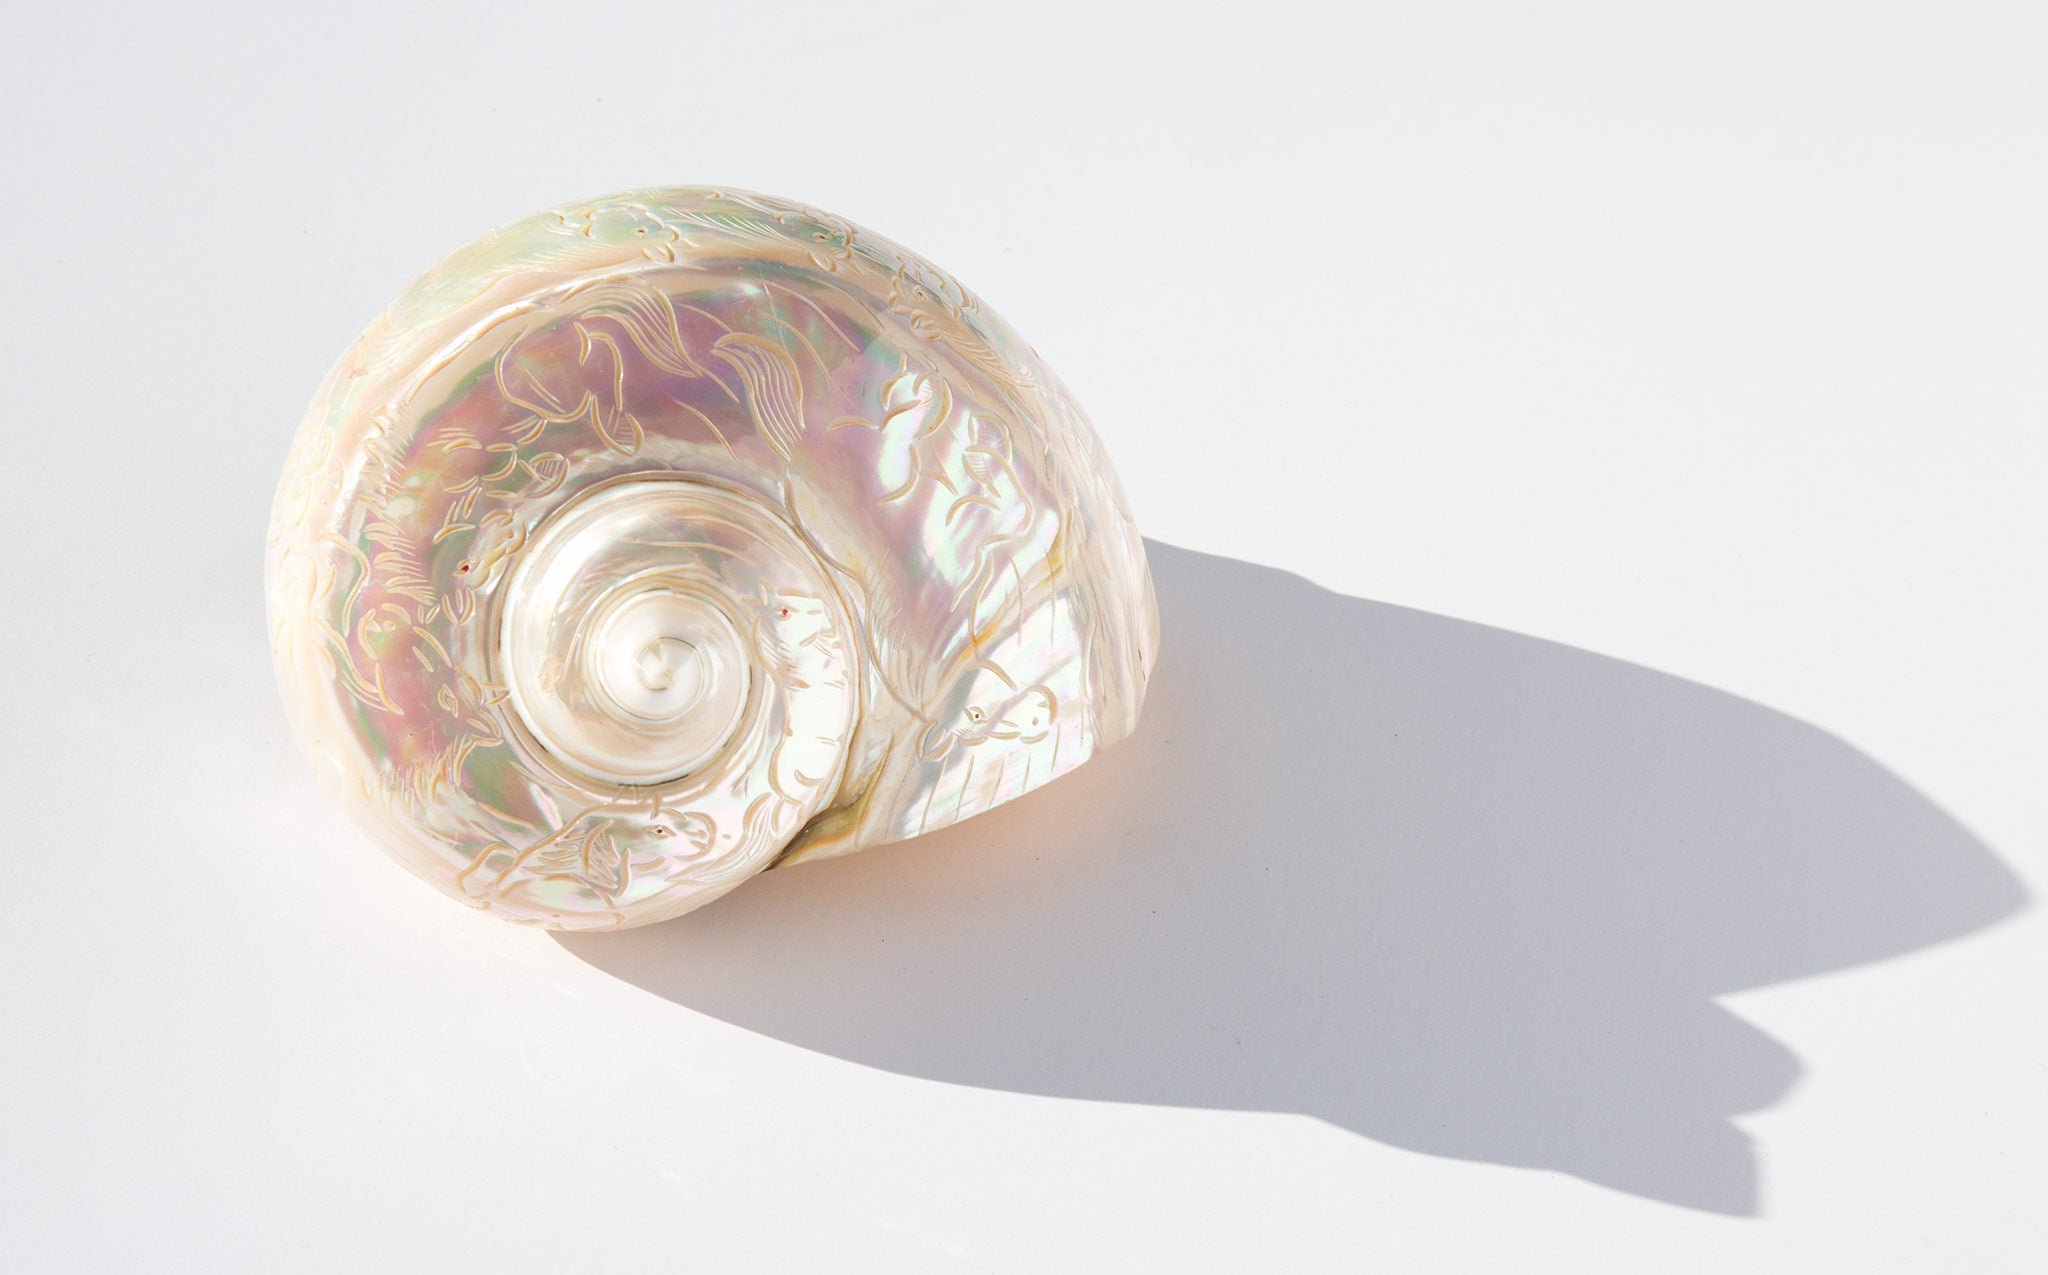 Iridescent Engraved Turbo Marmoratus Shell